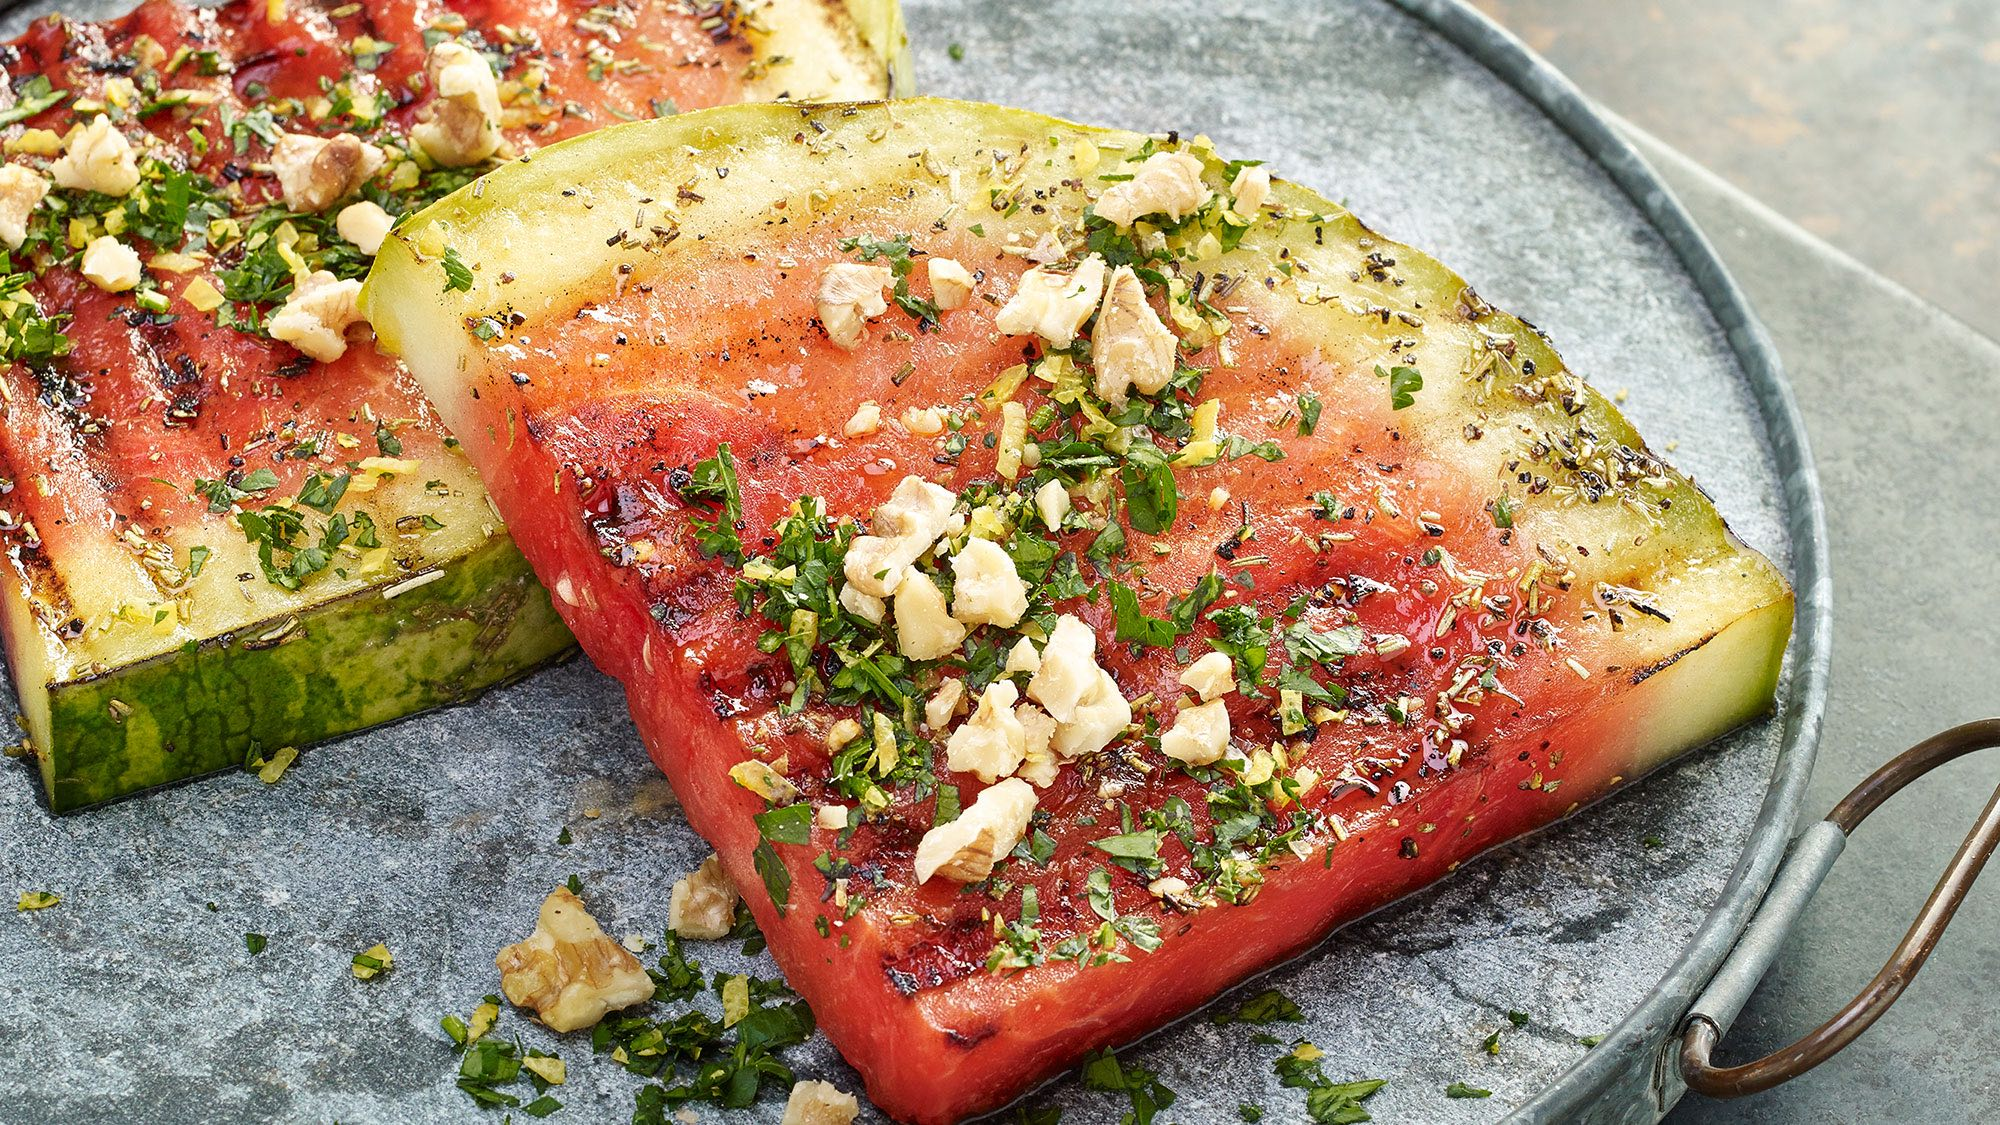 McCormick Grilled Watermelon Steaks with Walnut Gremolata